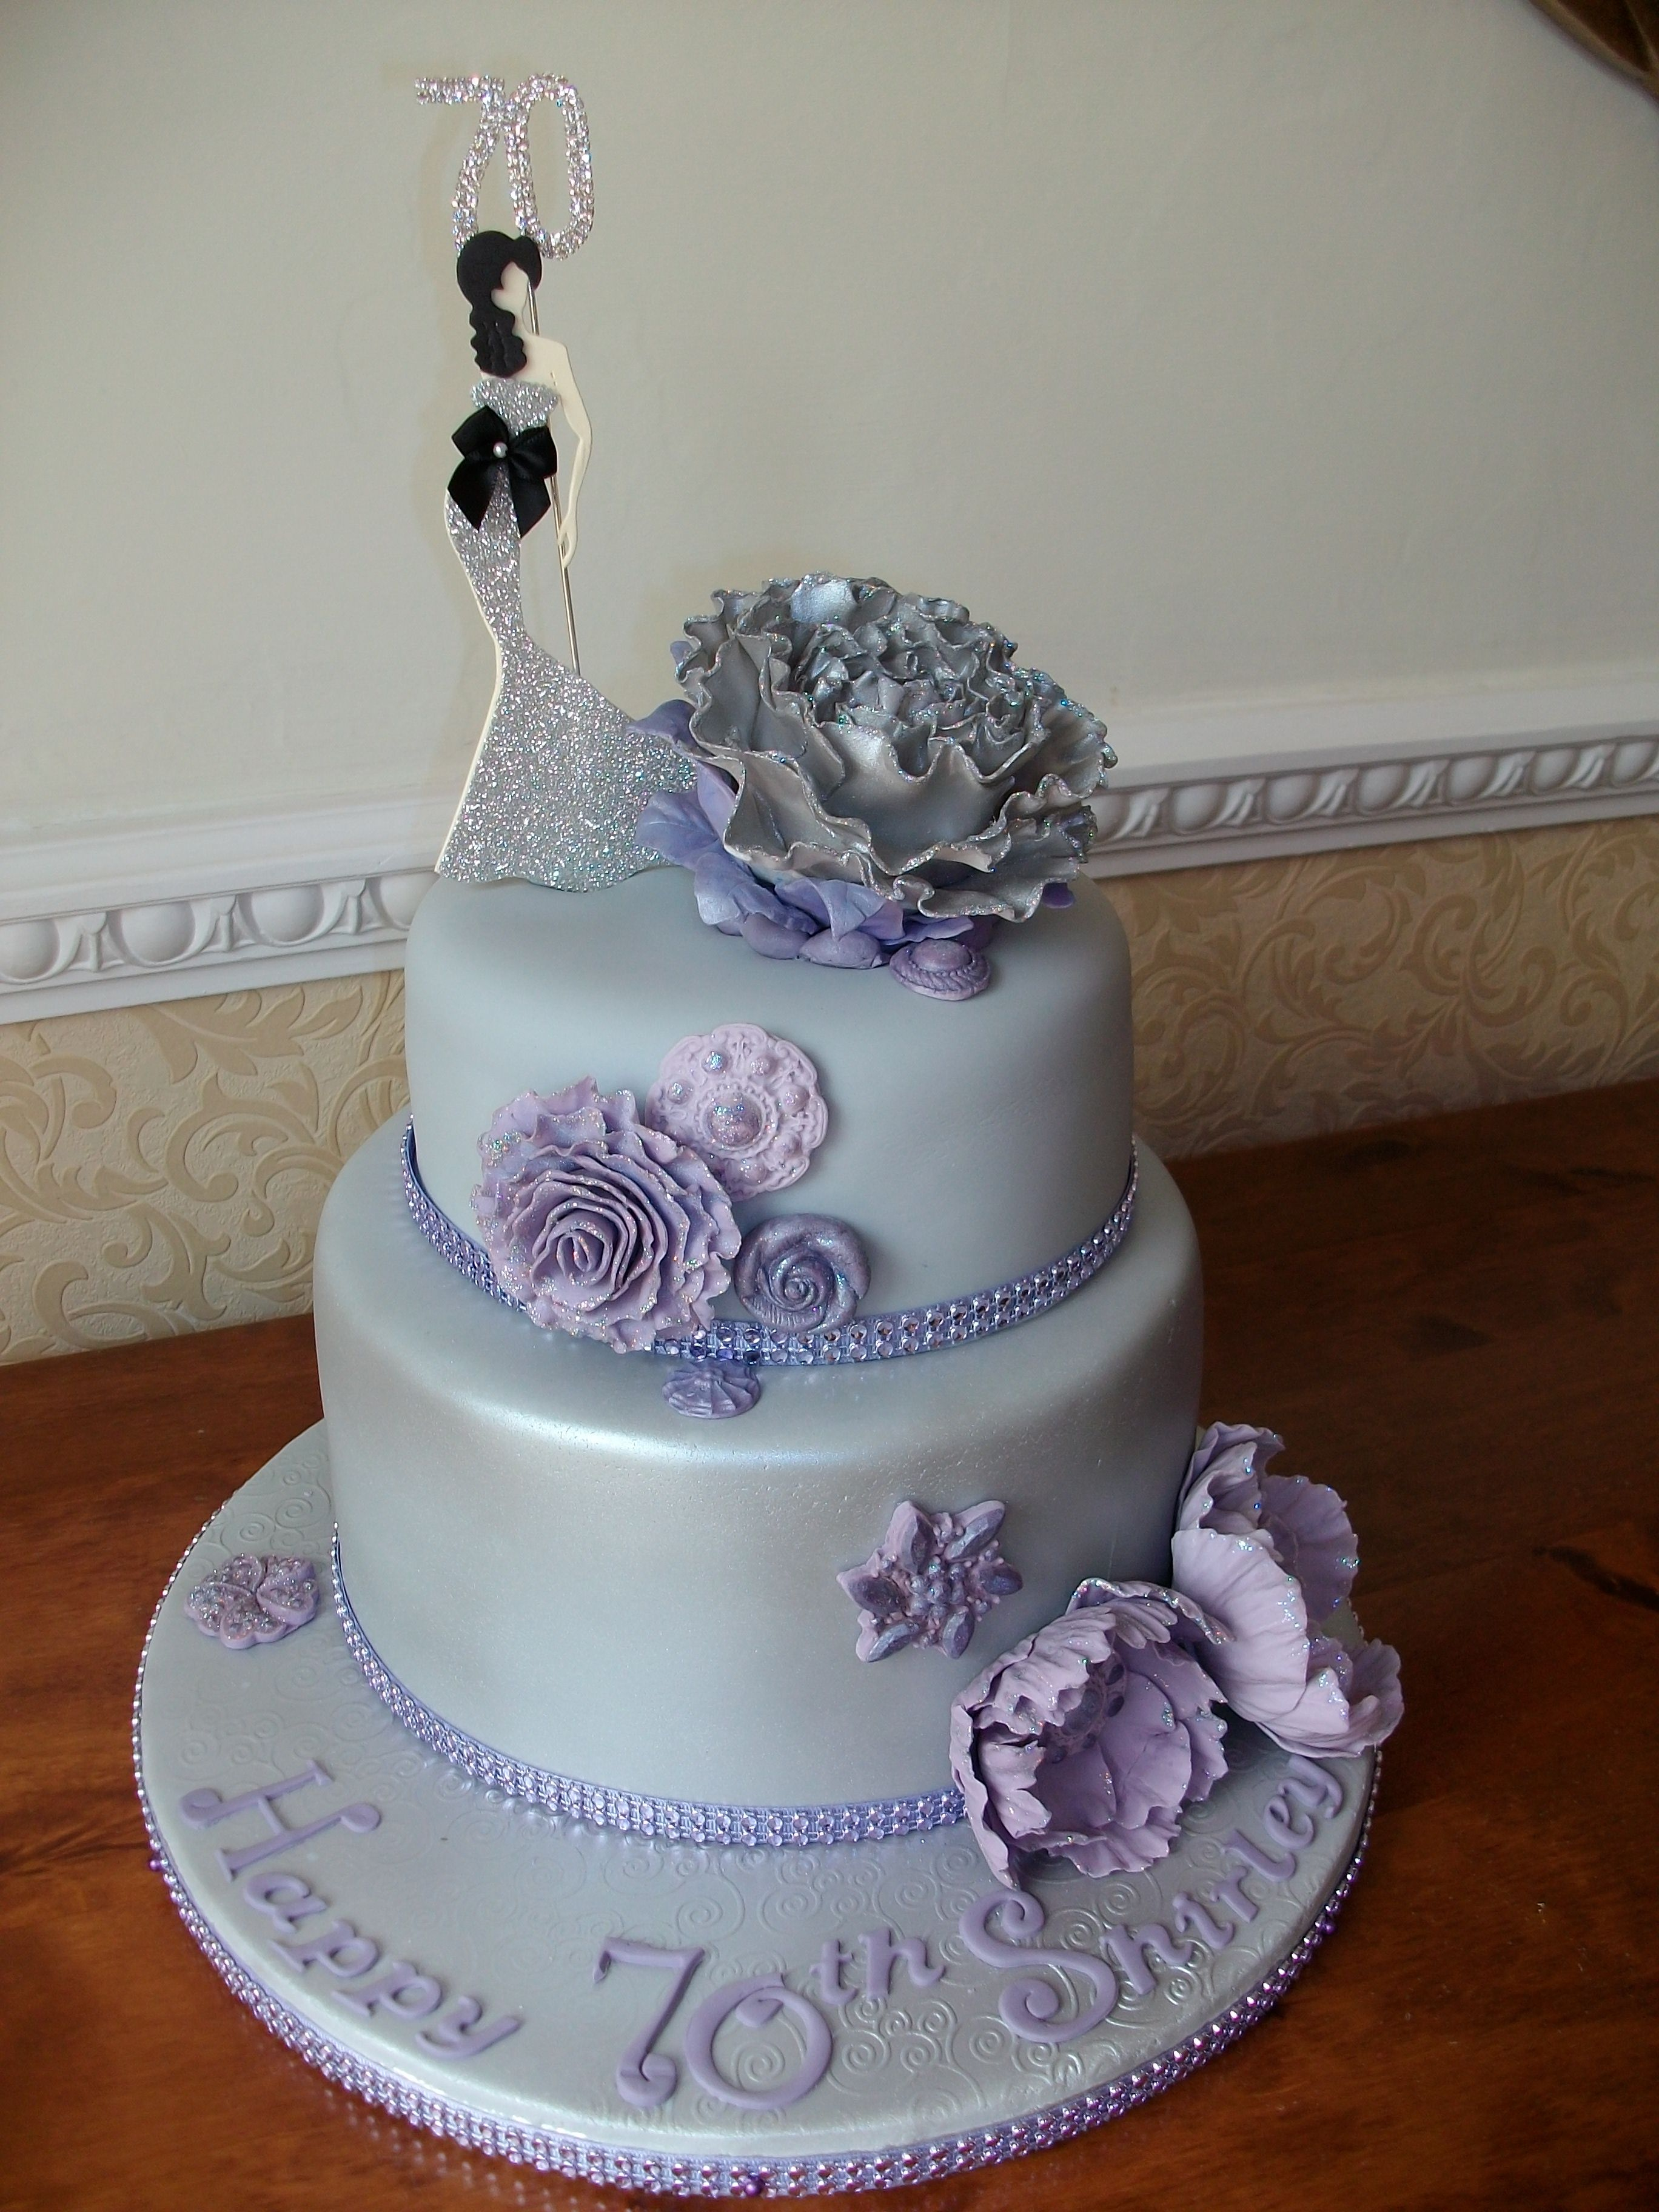 70th Birthday cake Silver cake with elegant lady cake topper and